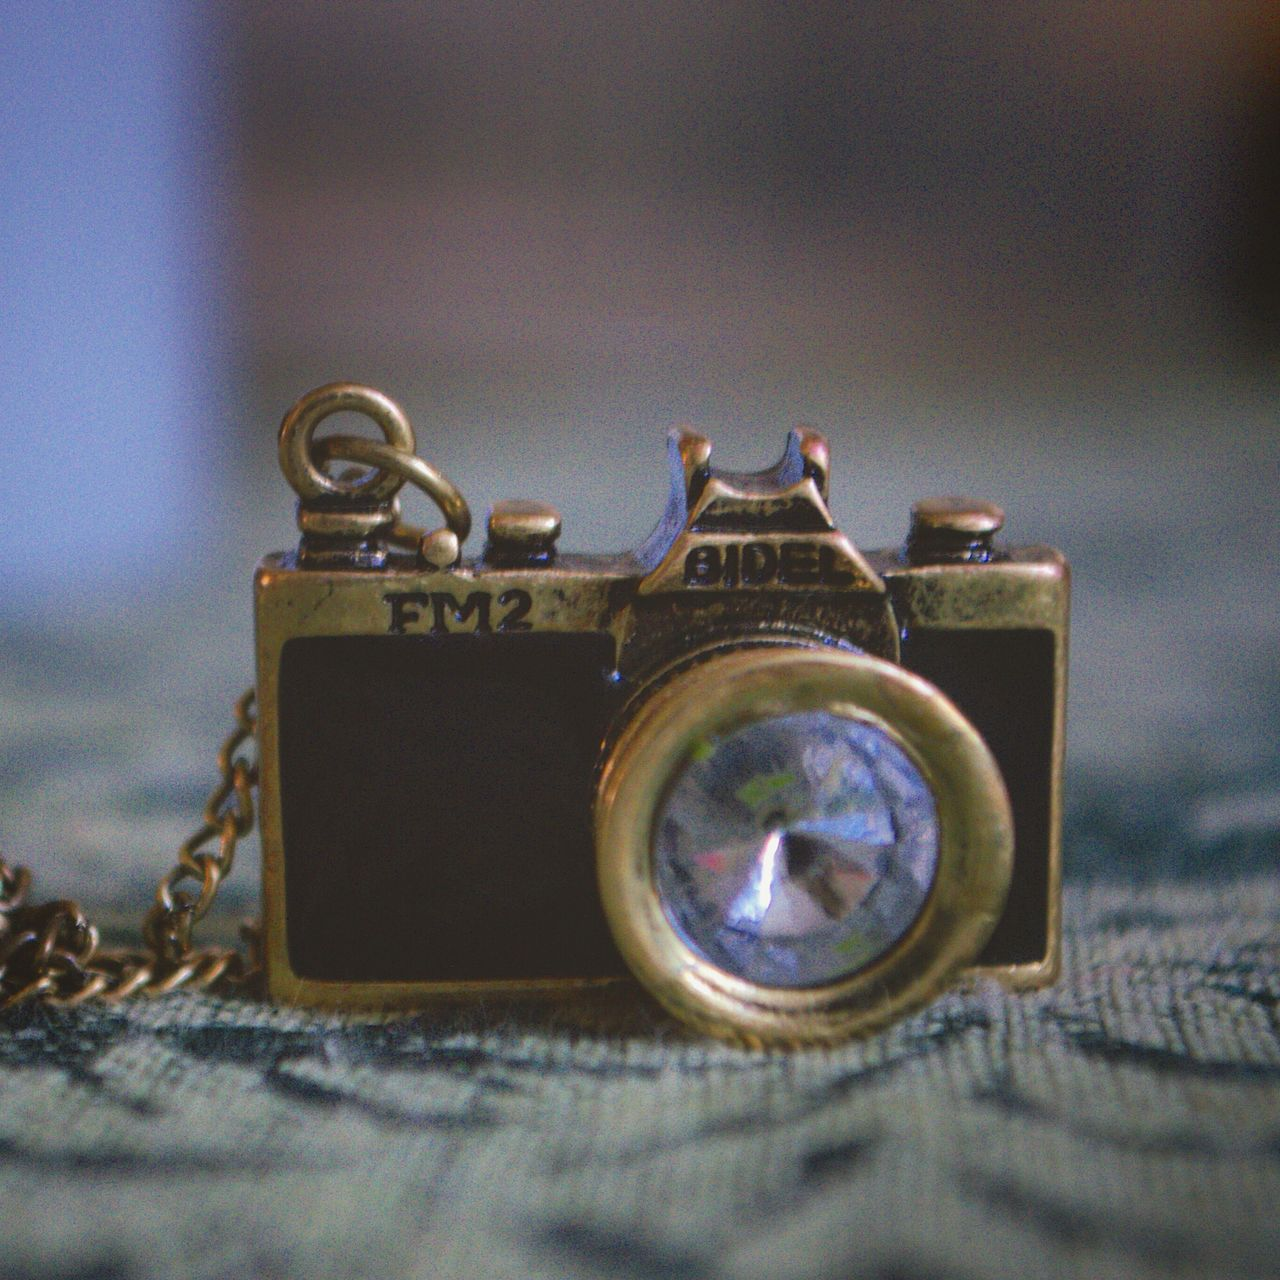 old-fashioned, still life, camera - photographic equipment, close-up, table, no people, retro styled, photography themes, technology, indoors, day